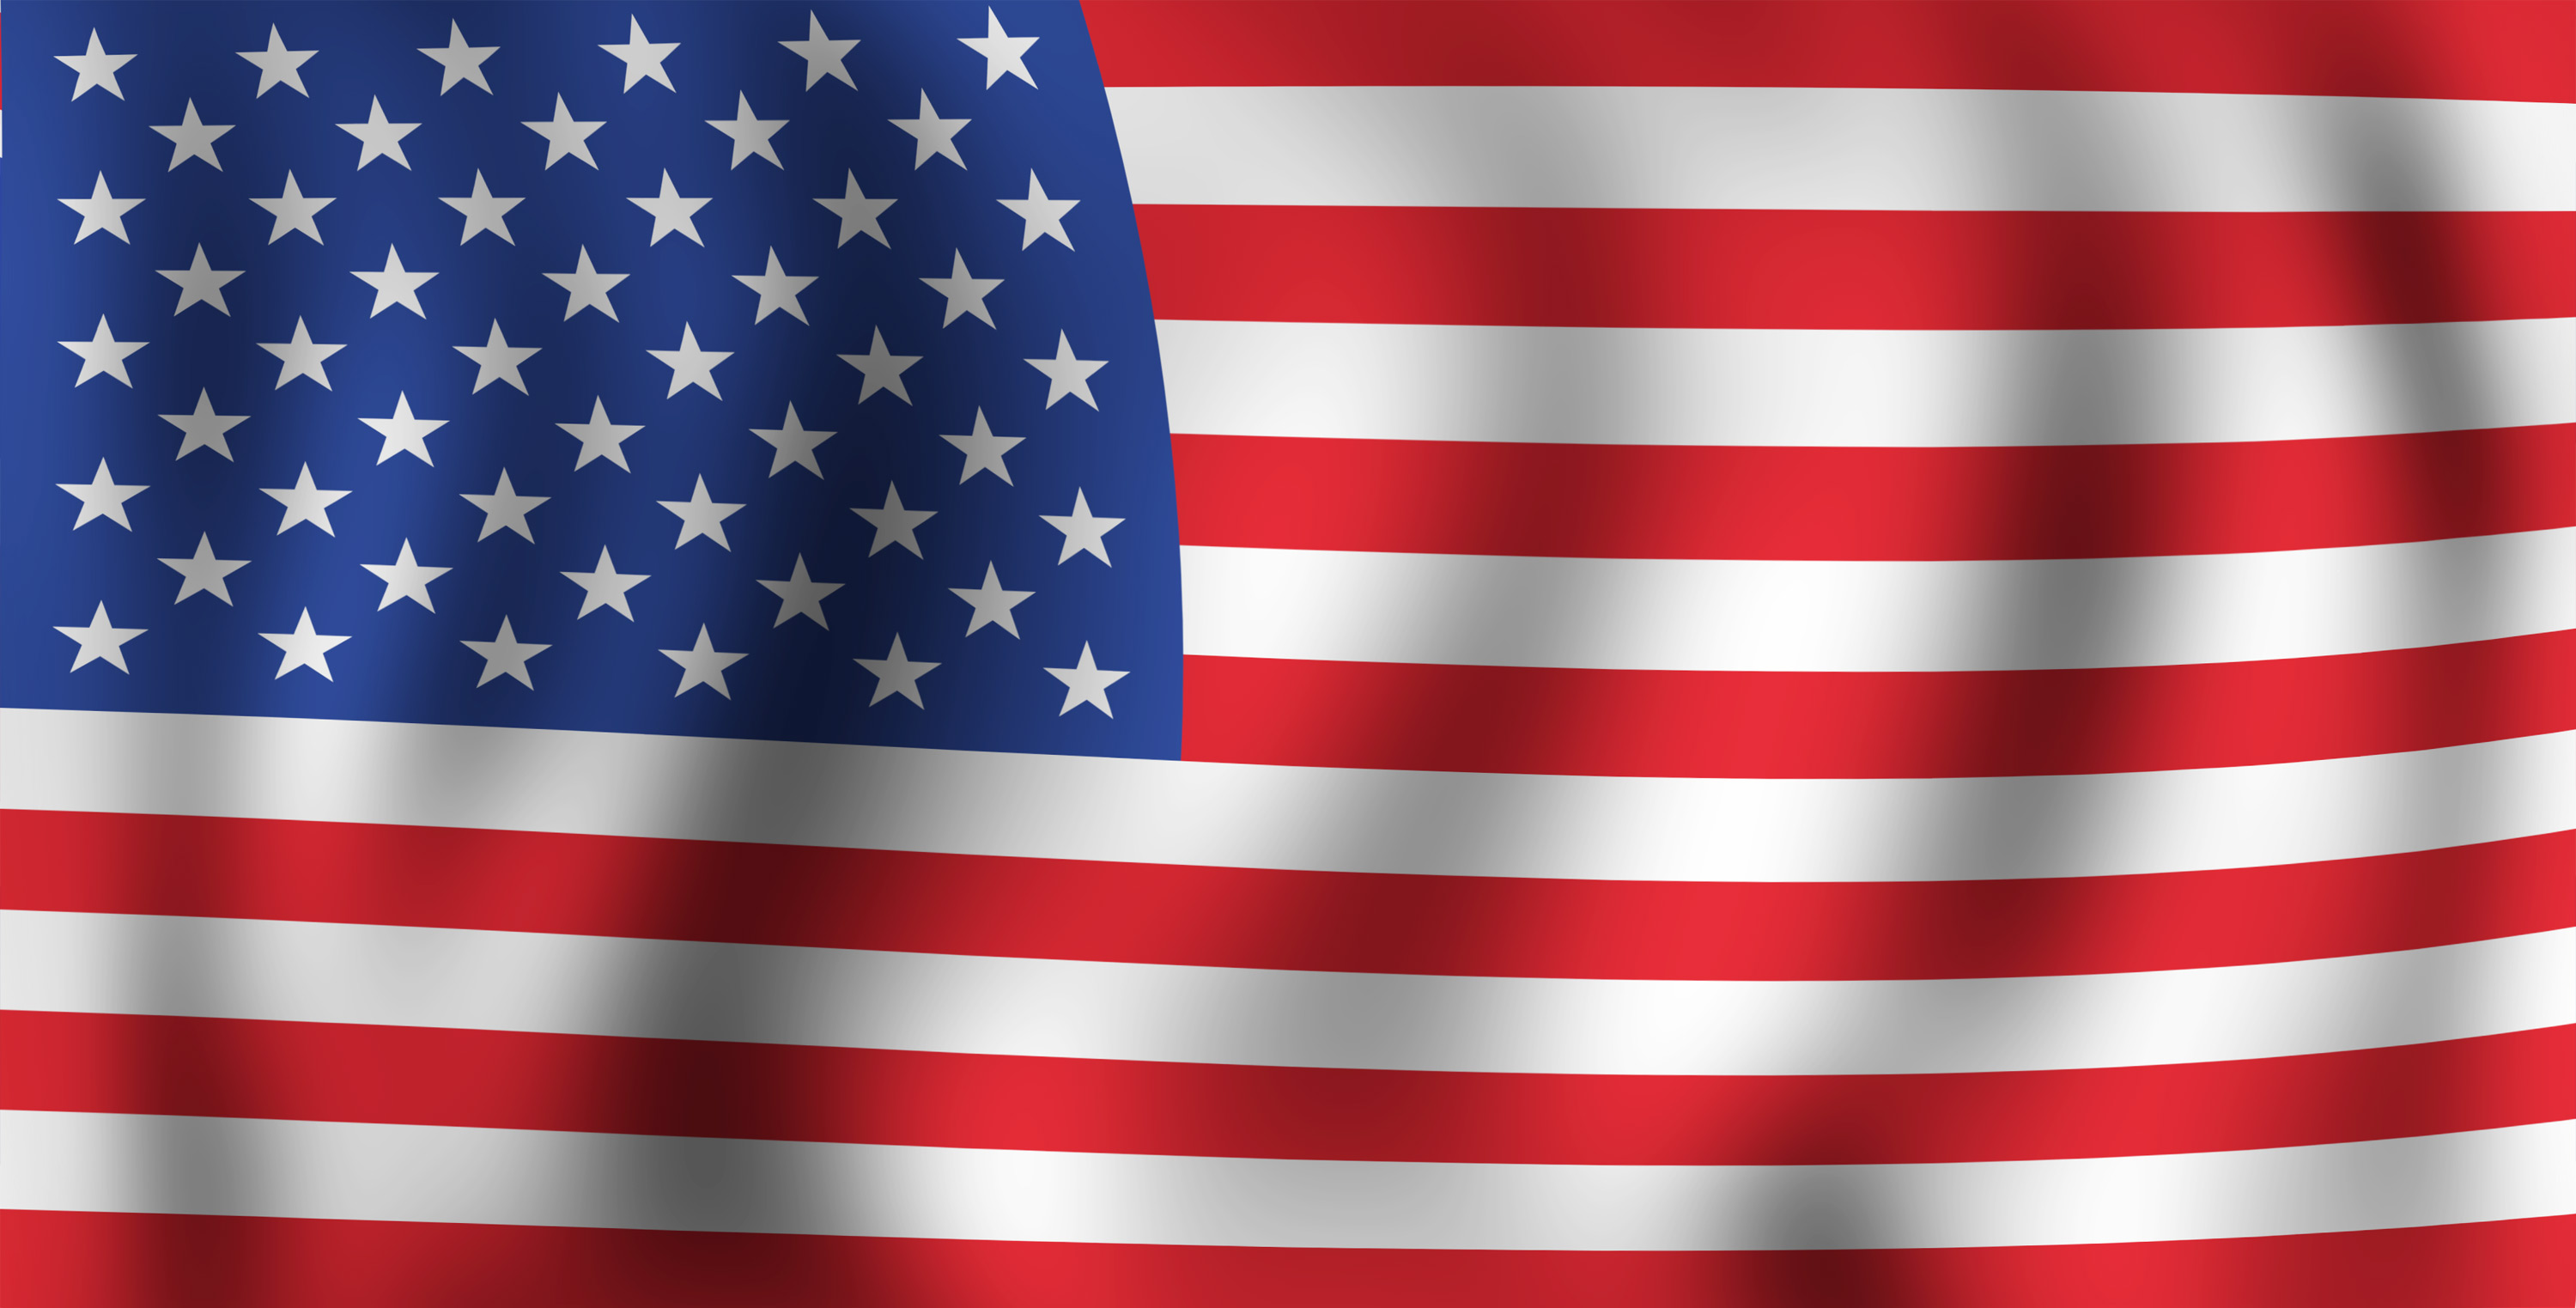 US Flag Code. The United States Flag Code establishes advisory rules for display and care of the flag of the United States. It is Section 1 of Title 4 of the United States Code (4 U.S.C. § 1 et seq).This etiquette is as applied within U.S. jurisdiction. In other countries and places, local etiquette applies.